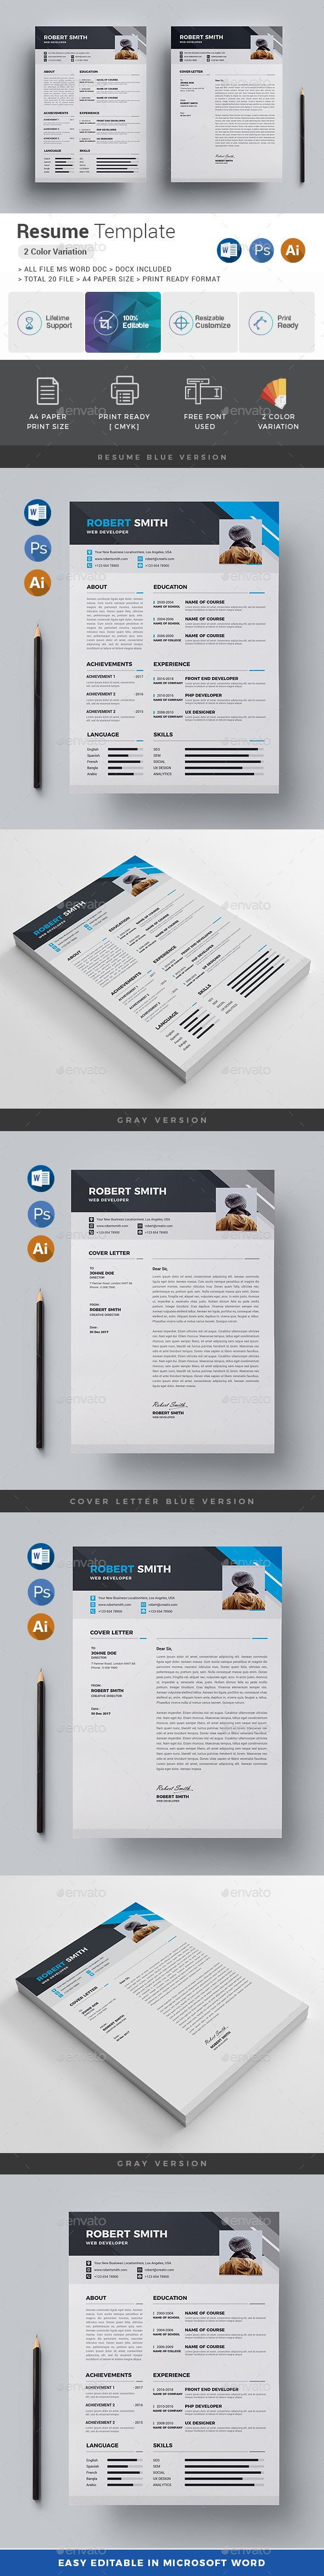 resume templates free word 2010%0A Resume Design Template PSD  Vector EPS  AI Illustrator  MS Word